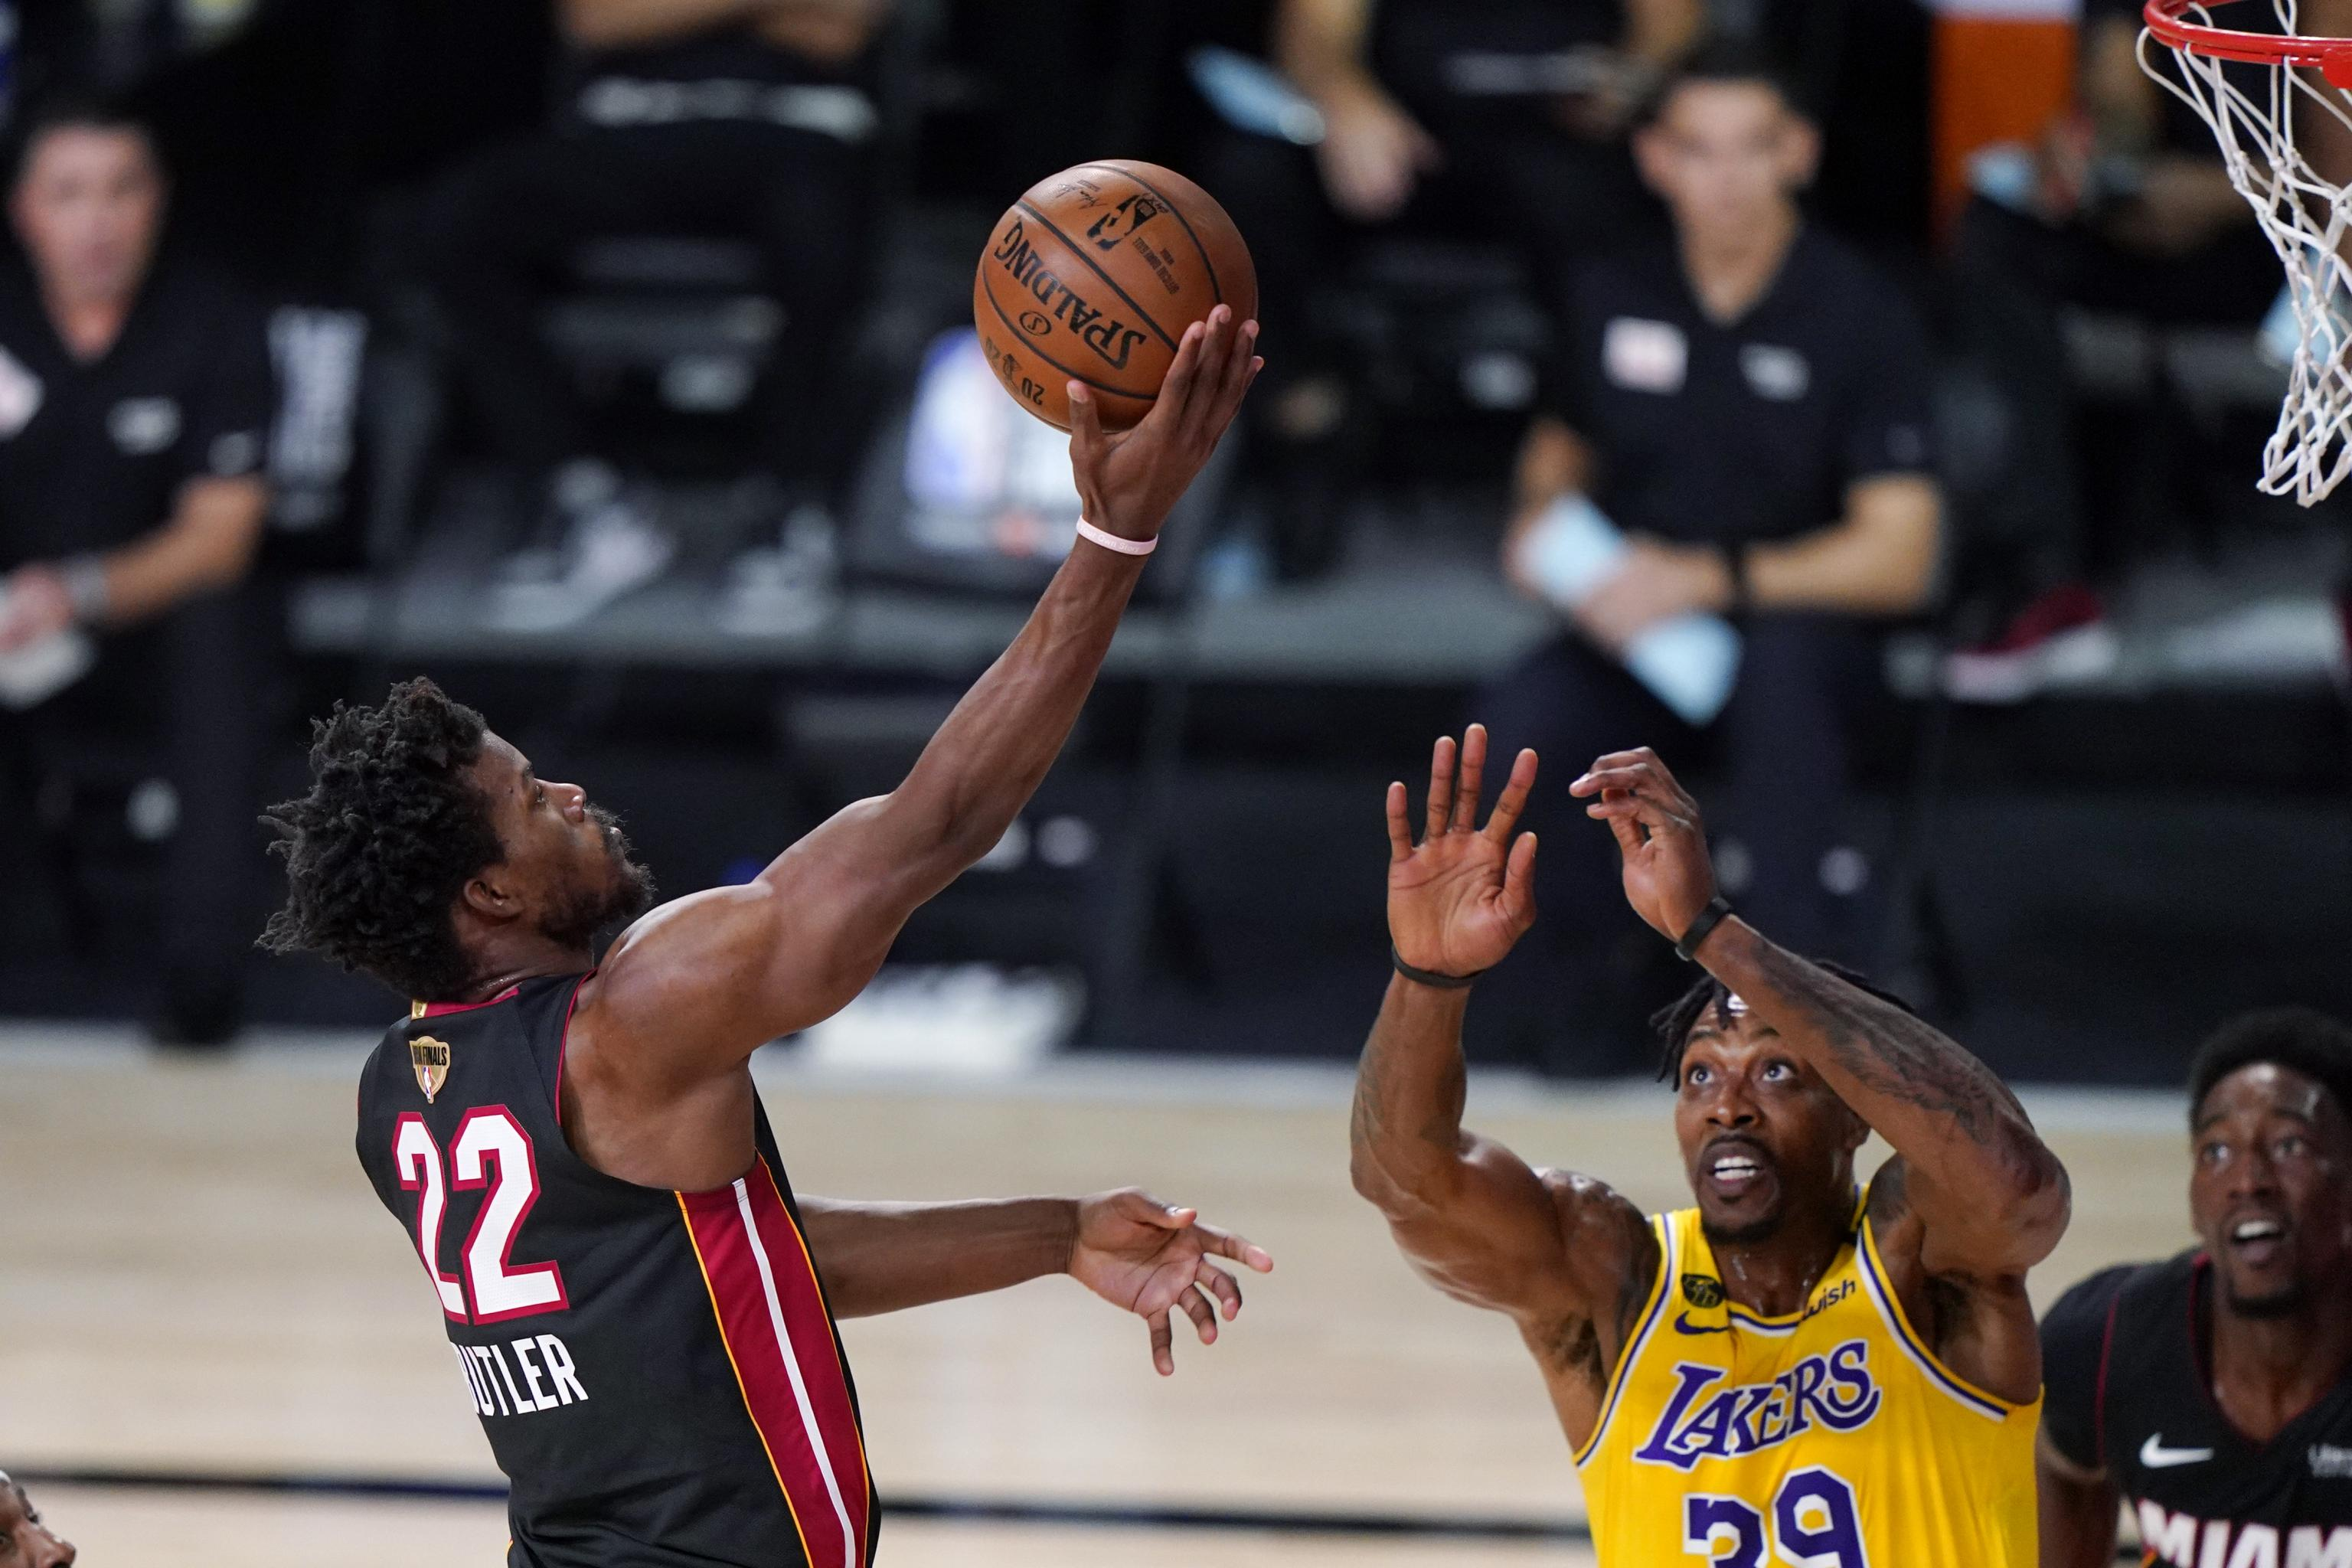 Jimmy Butler Heat Have To Put Up More Of A Fight After Game 1 Loss Vs Lakers Bleacher Report Latest News Videos And Highlights